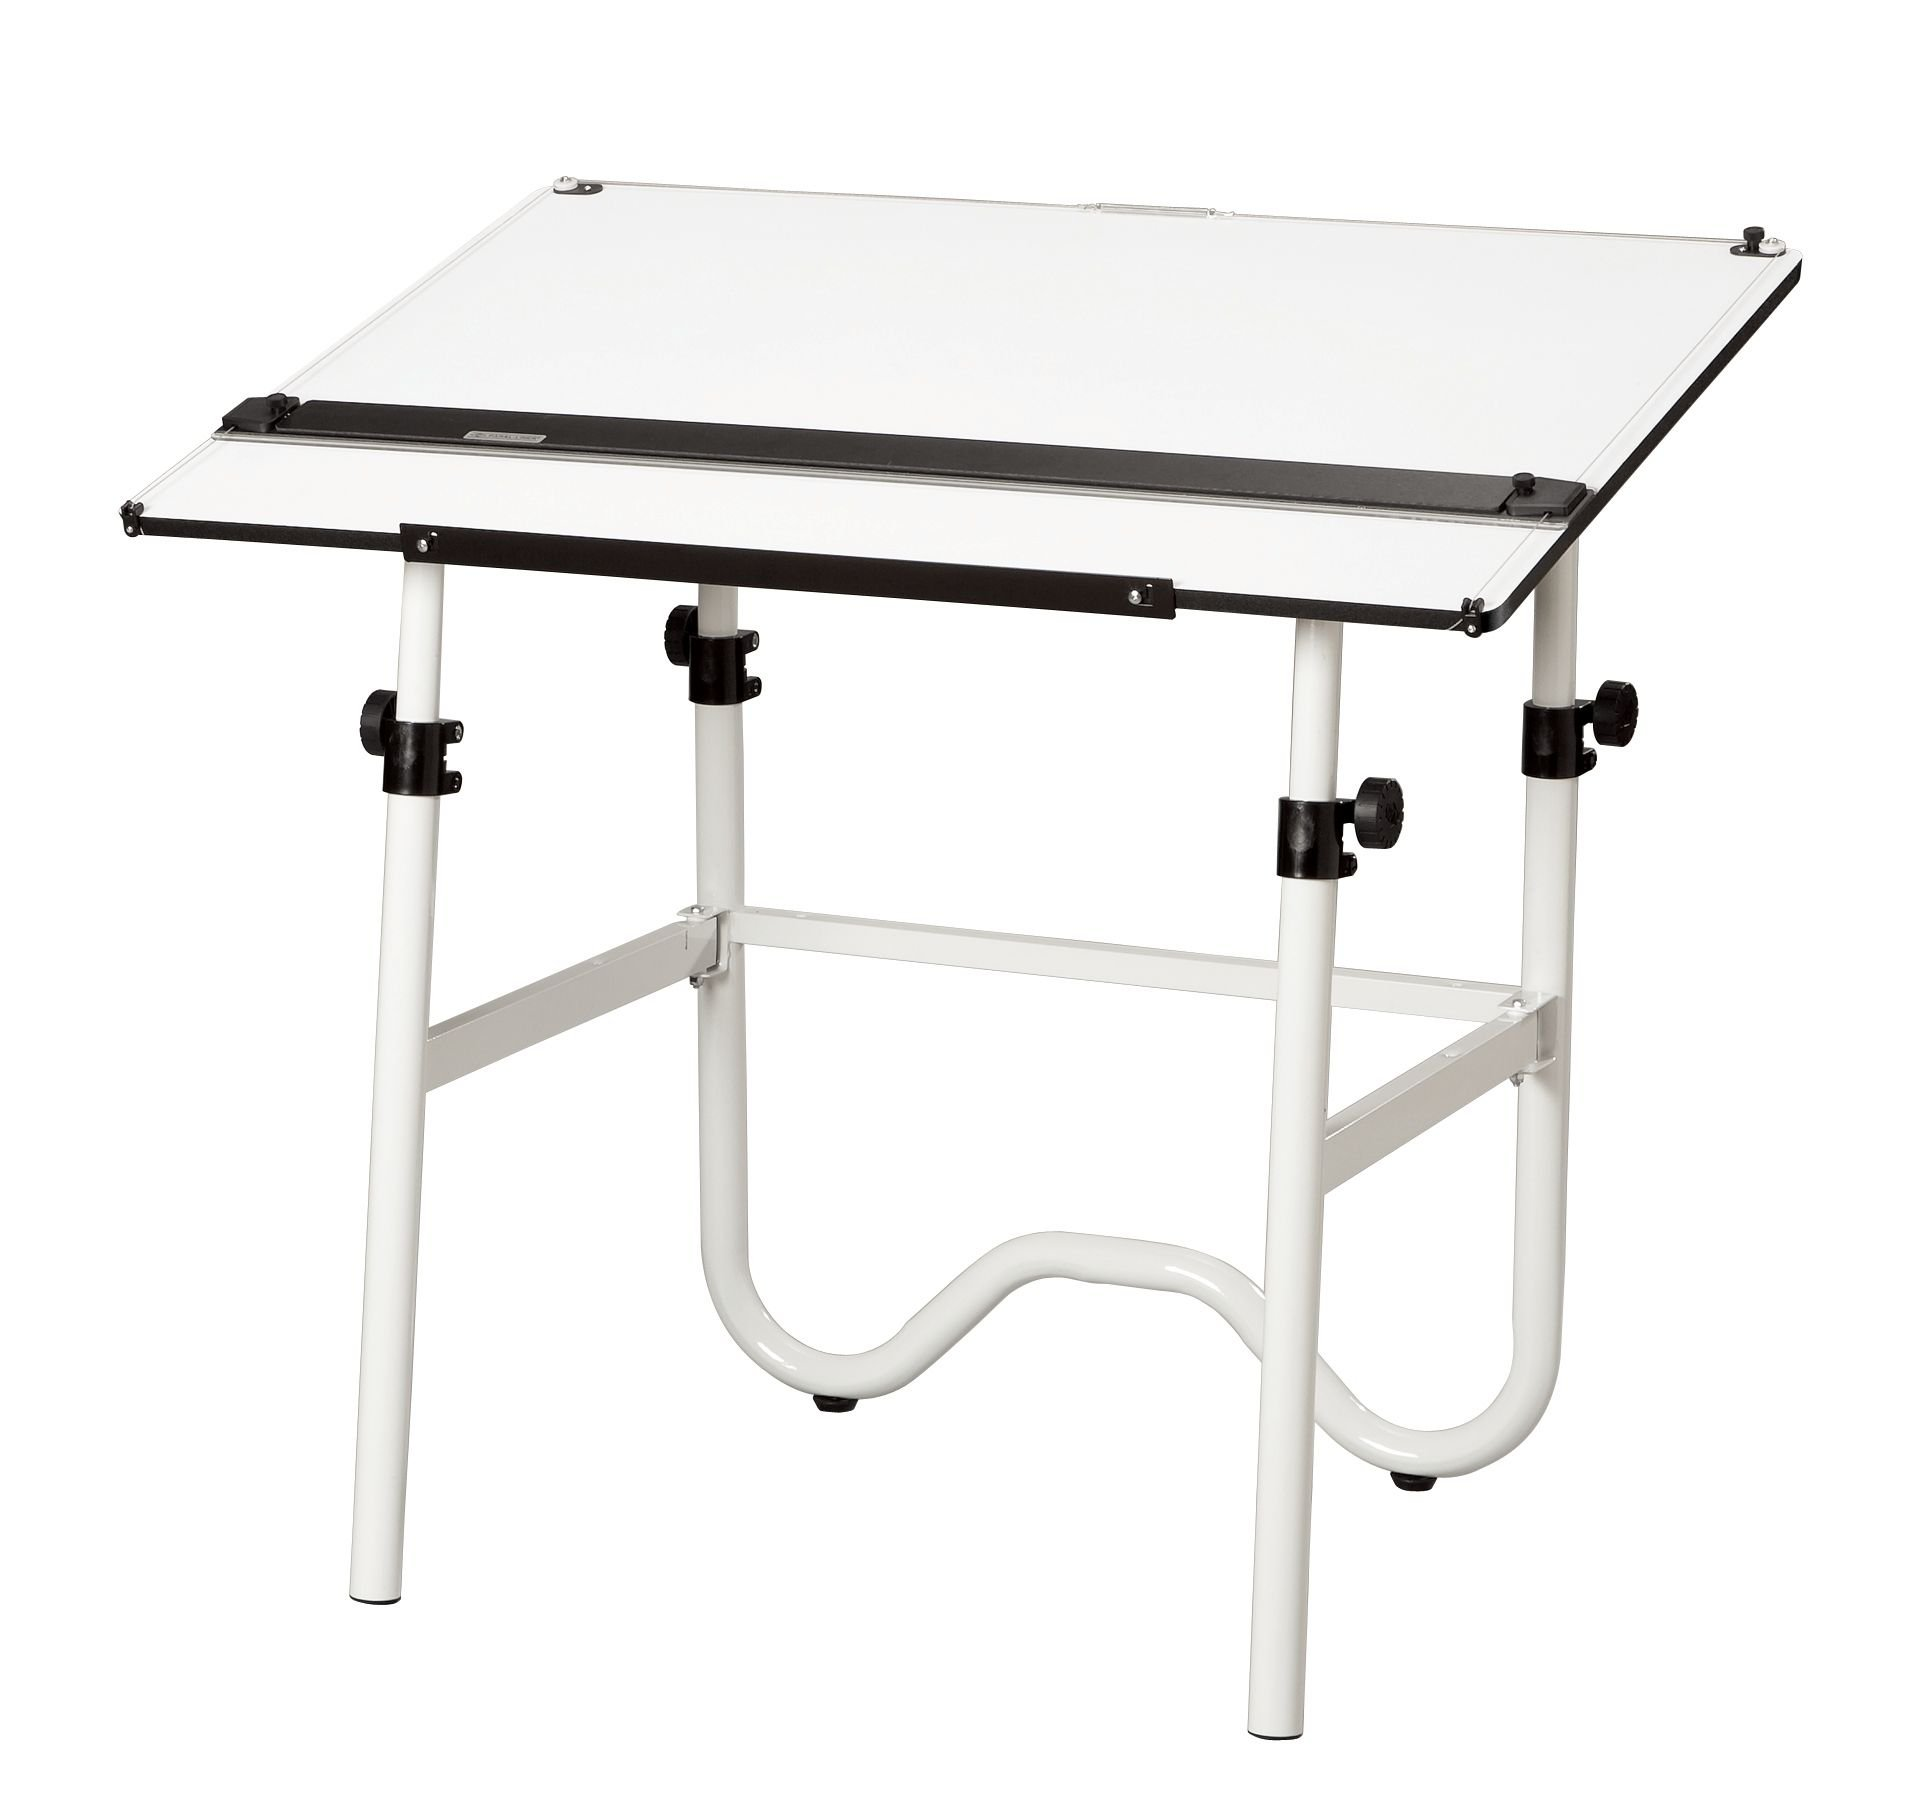 Alvin 1101-42 Paral-Liner 42 inch Mobile Parallel Straightedge by Alvin